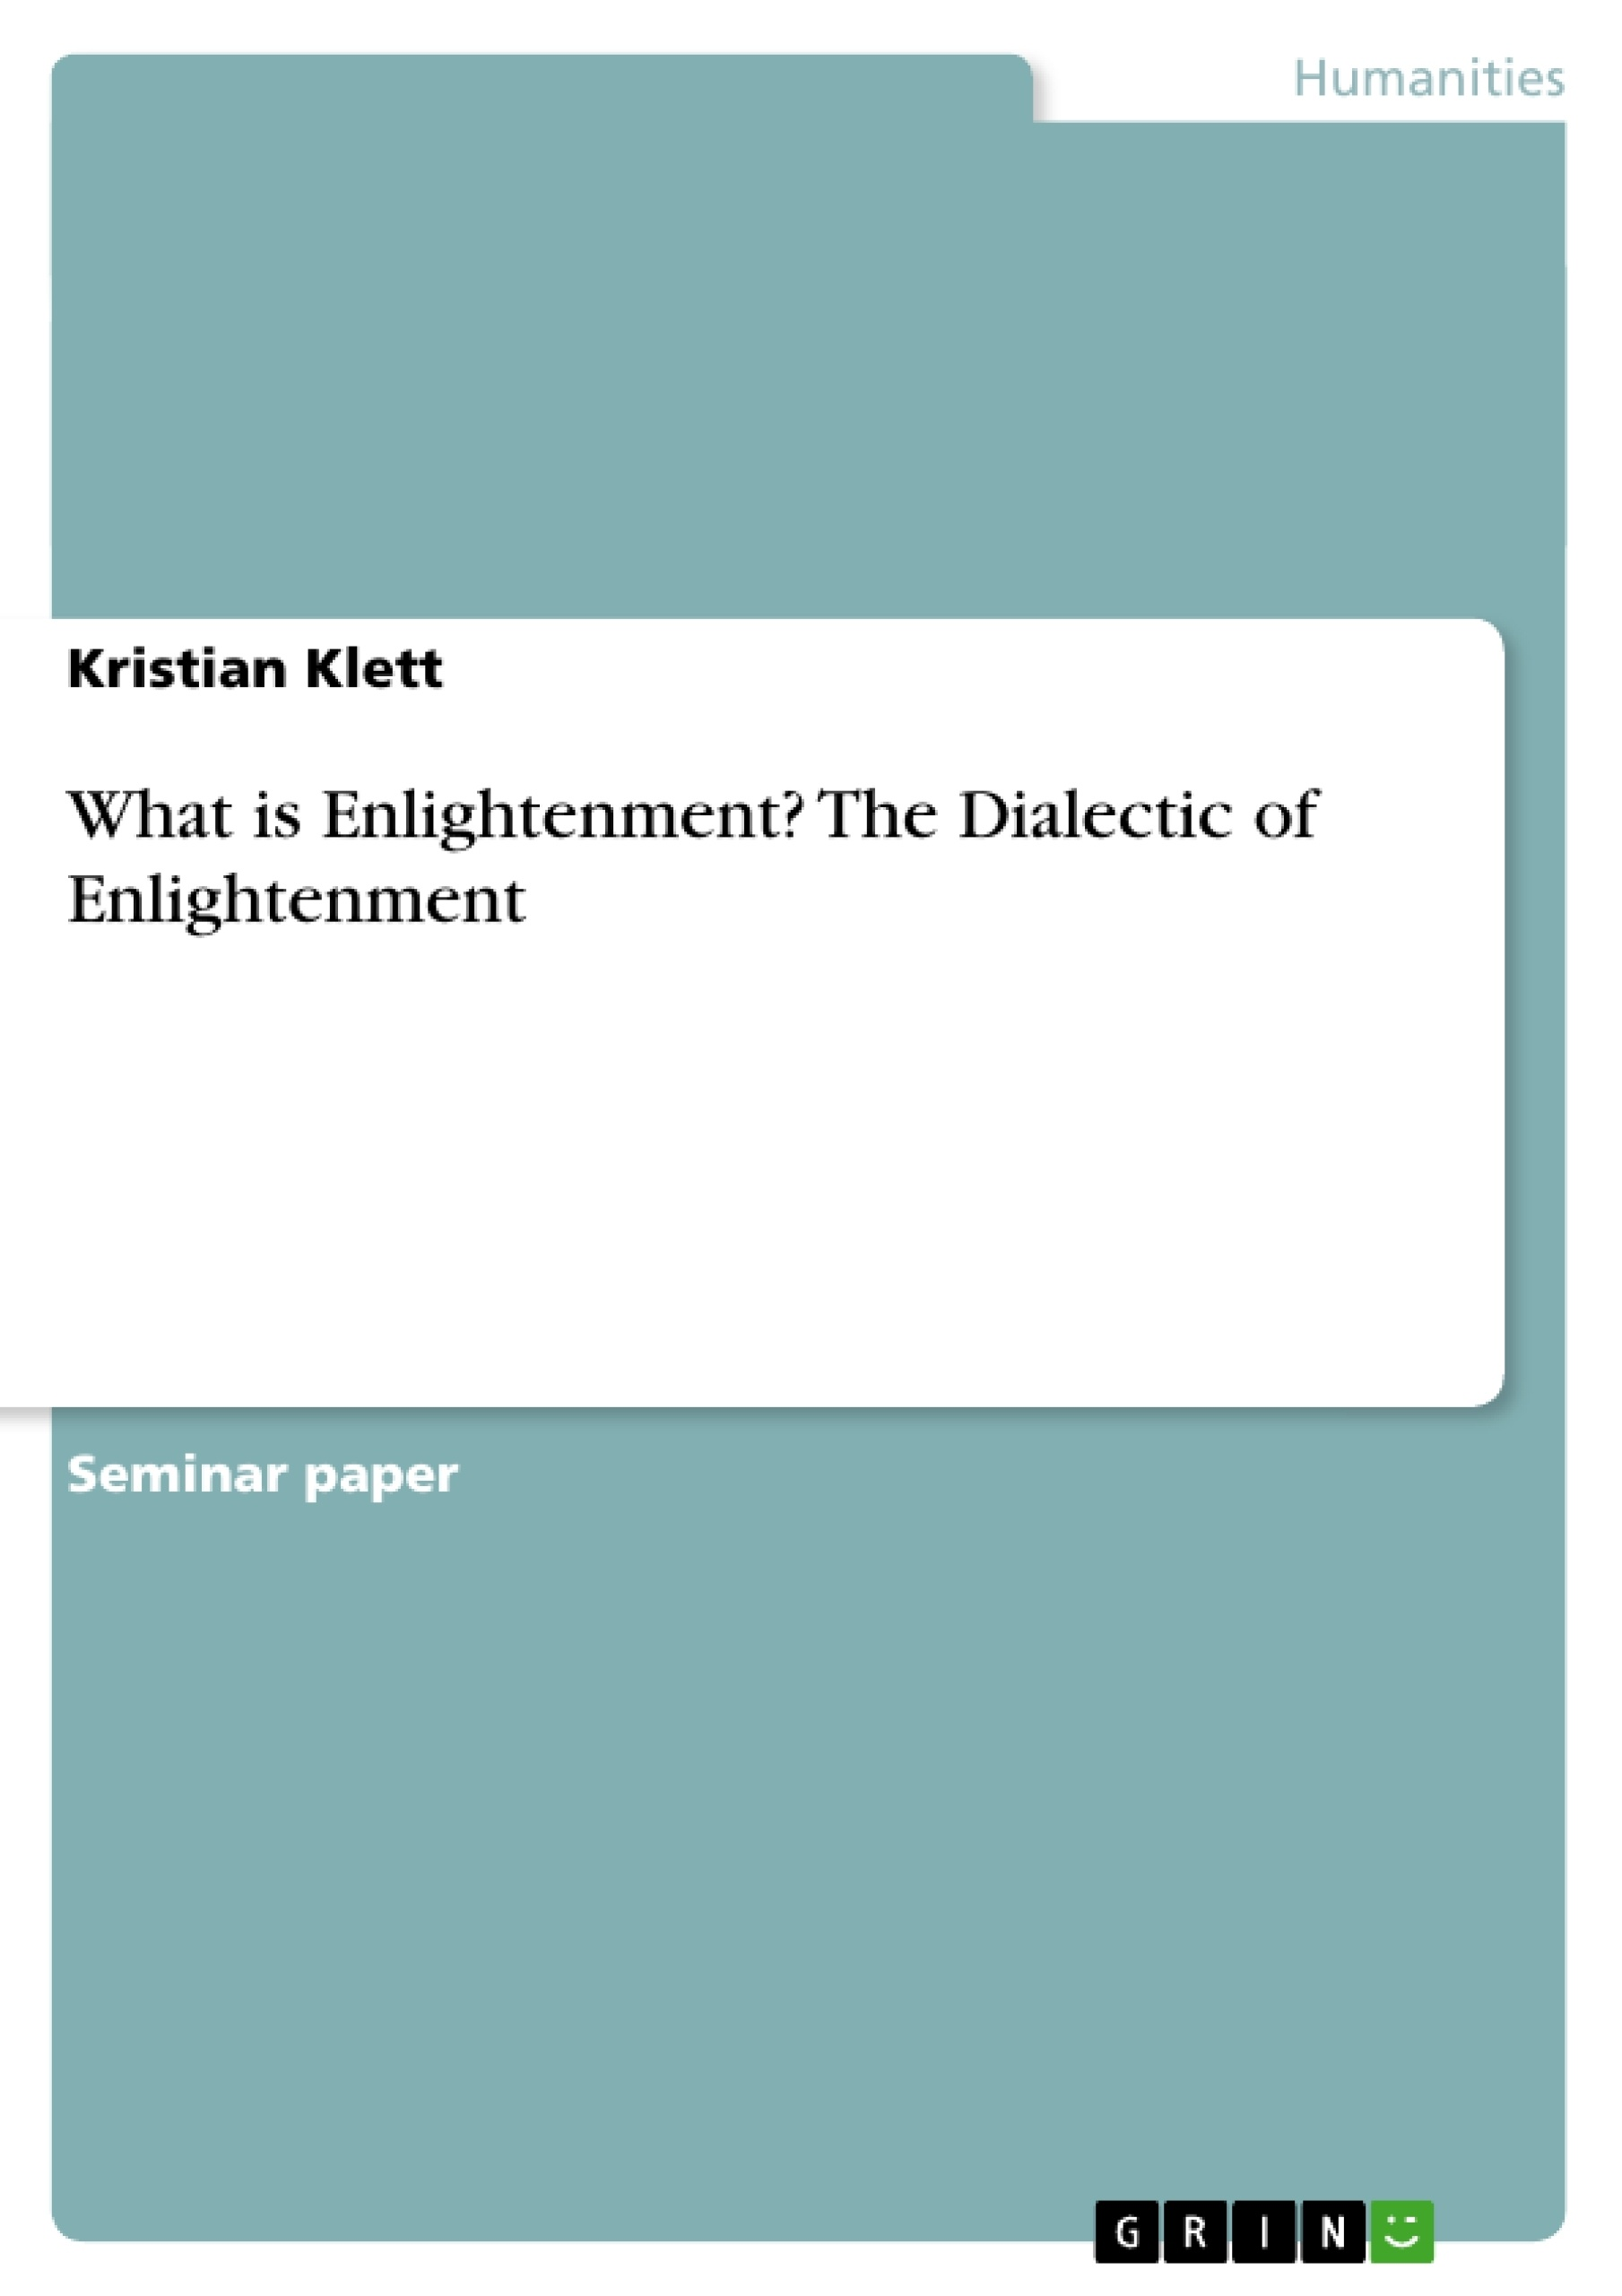 GRIN   What is Enlightenment The Dialectic of Enlightenment